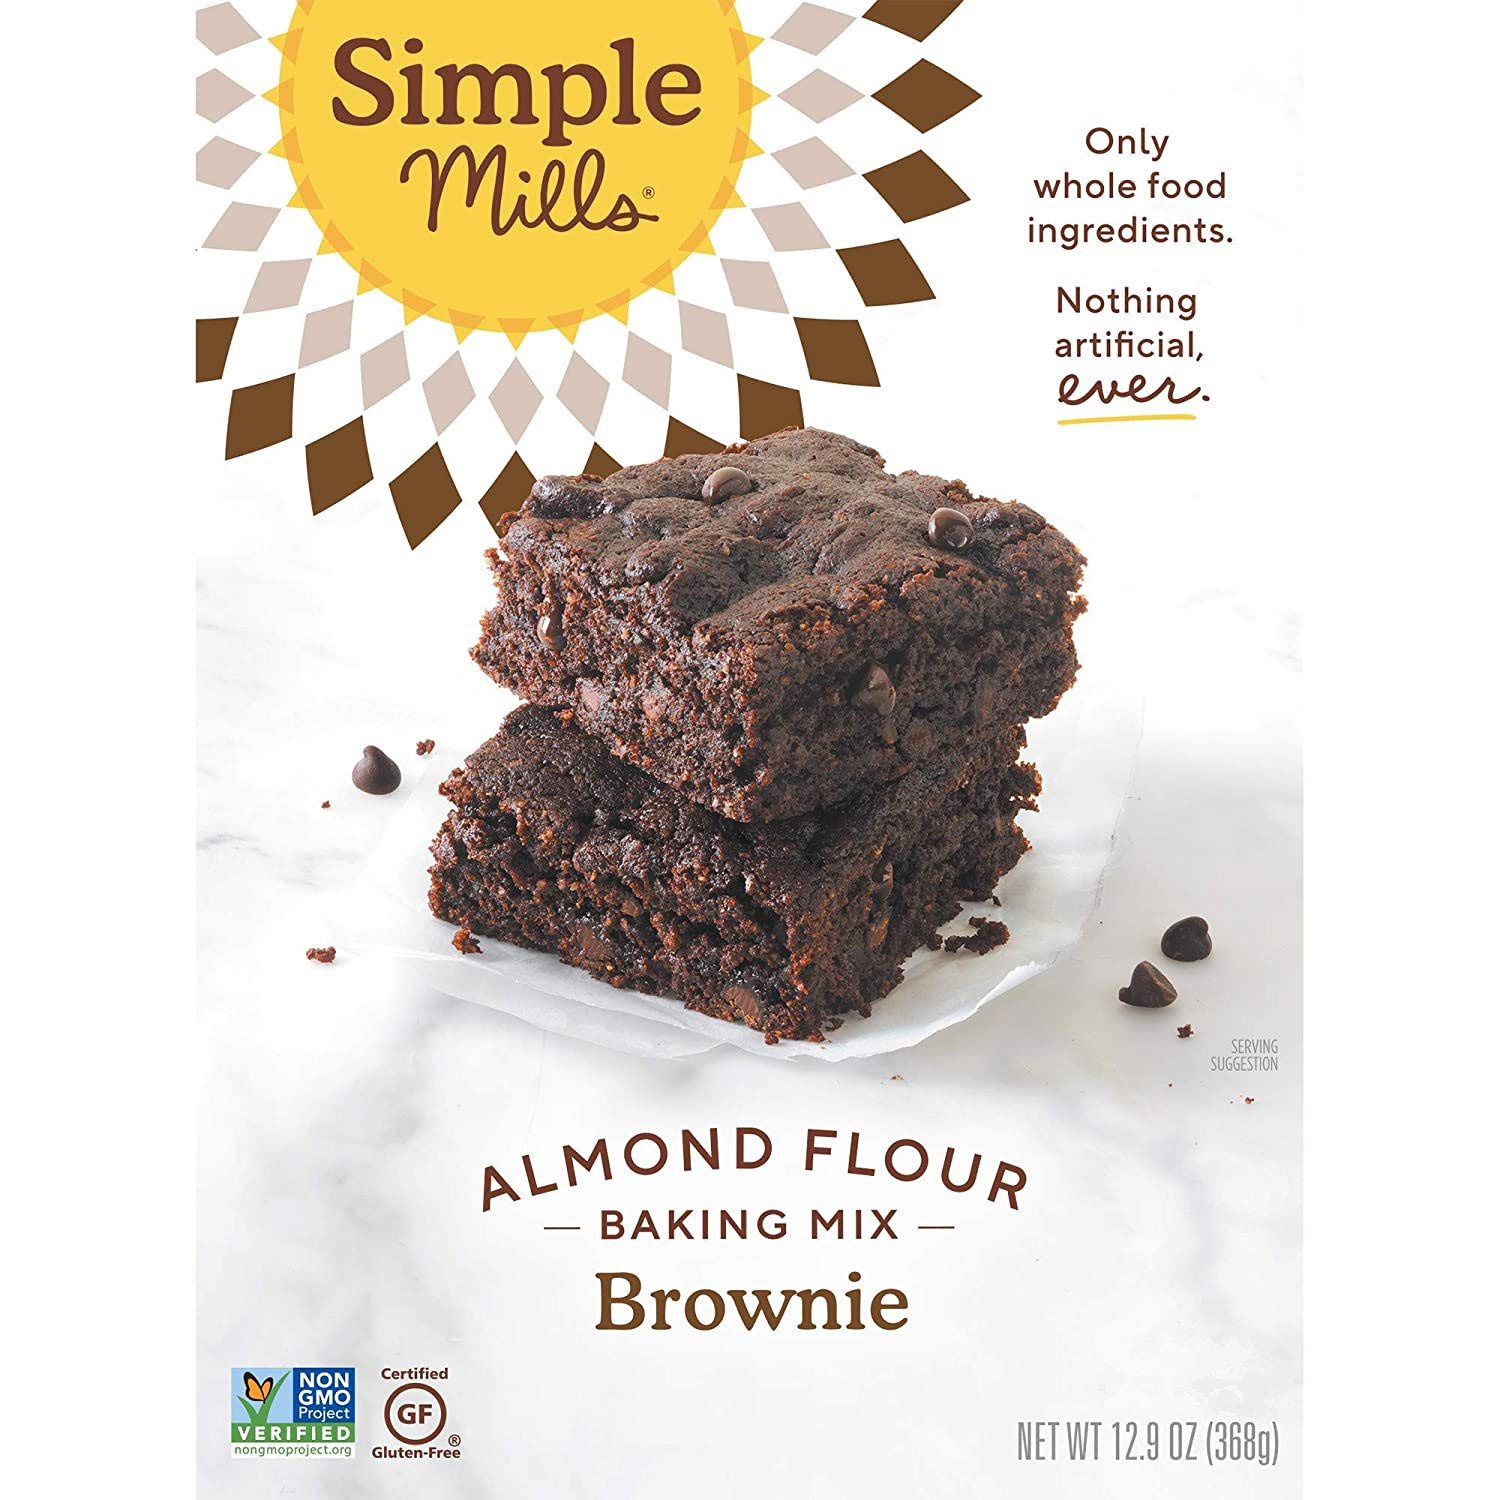 Amazon.com : Simple Mills Almond Flour Baking Mix, Gluten Free Brownie Mix,  Easy to make in Brownie Pan, Chocolate Flavor, Made with whole foods, 6  Count (Packaging May Vary) : Grocery &